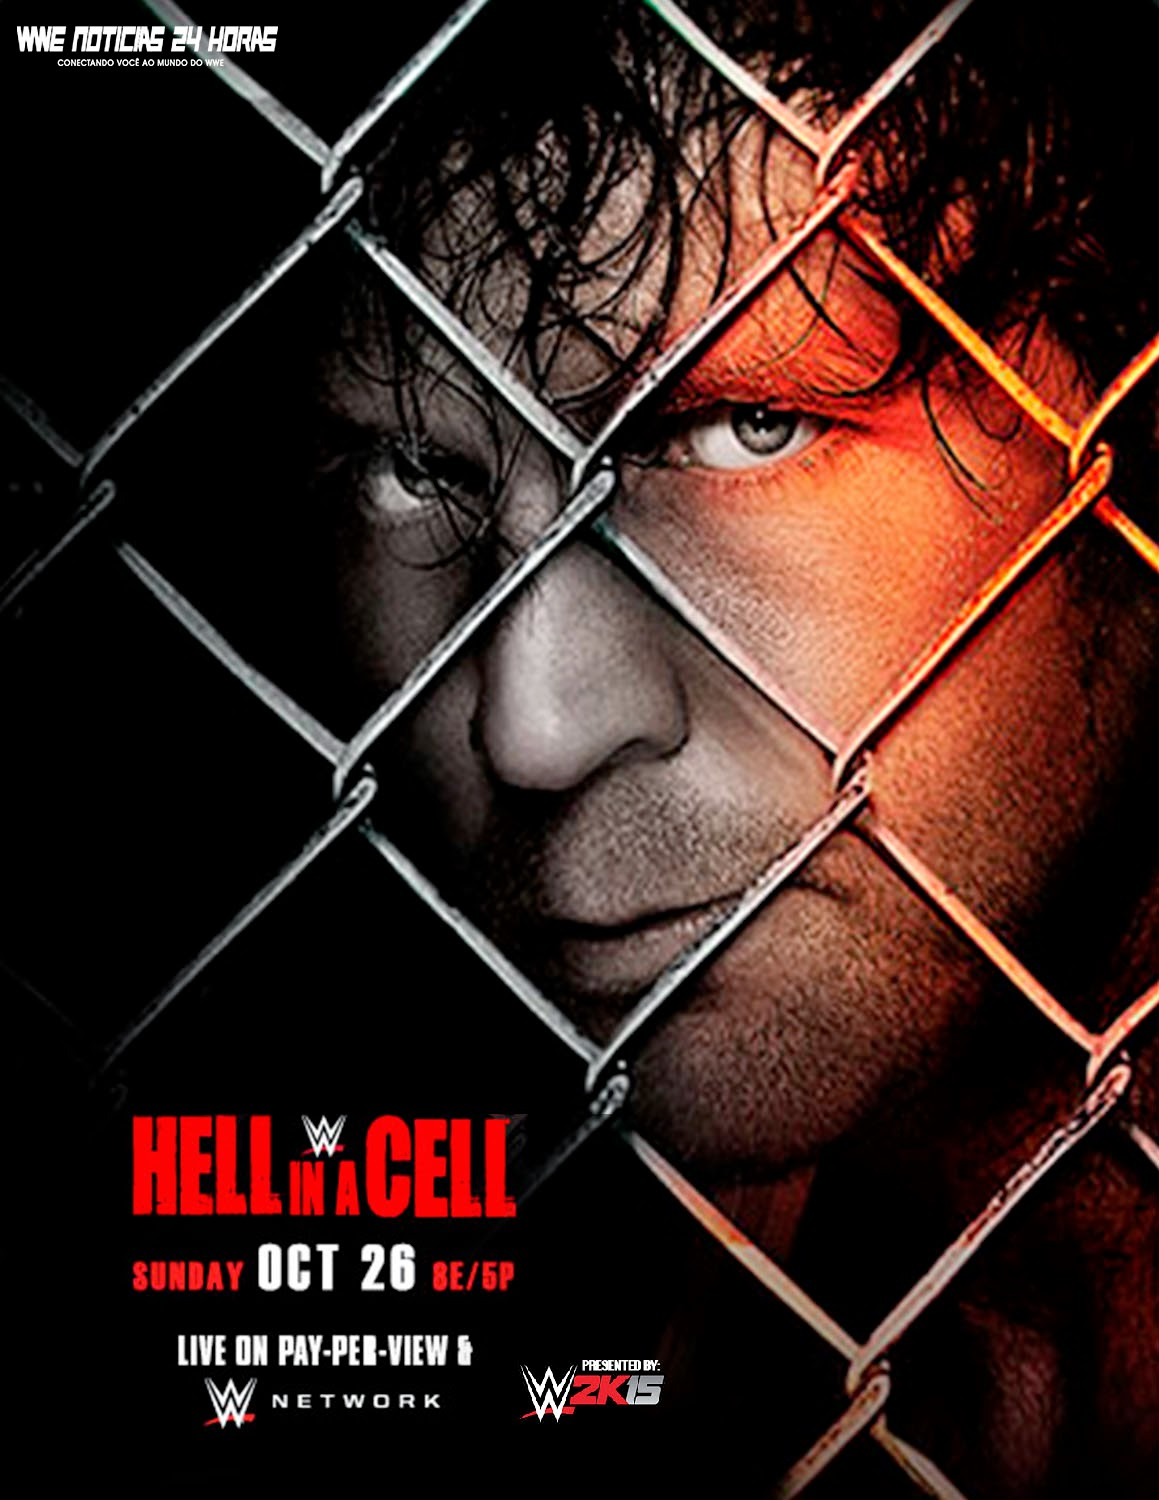 PRÓXIMO PAY-PER-VIEW WWE HELL IN A CELL 2014